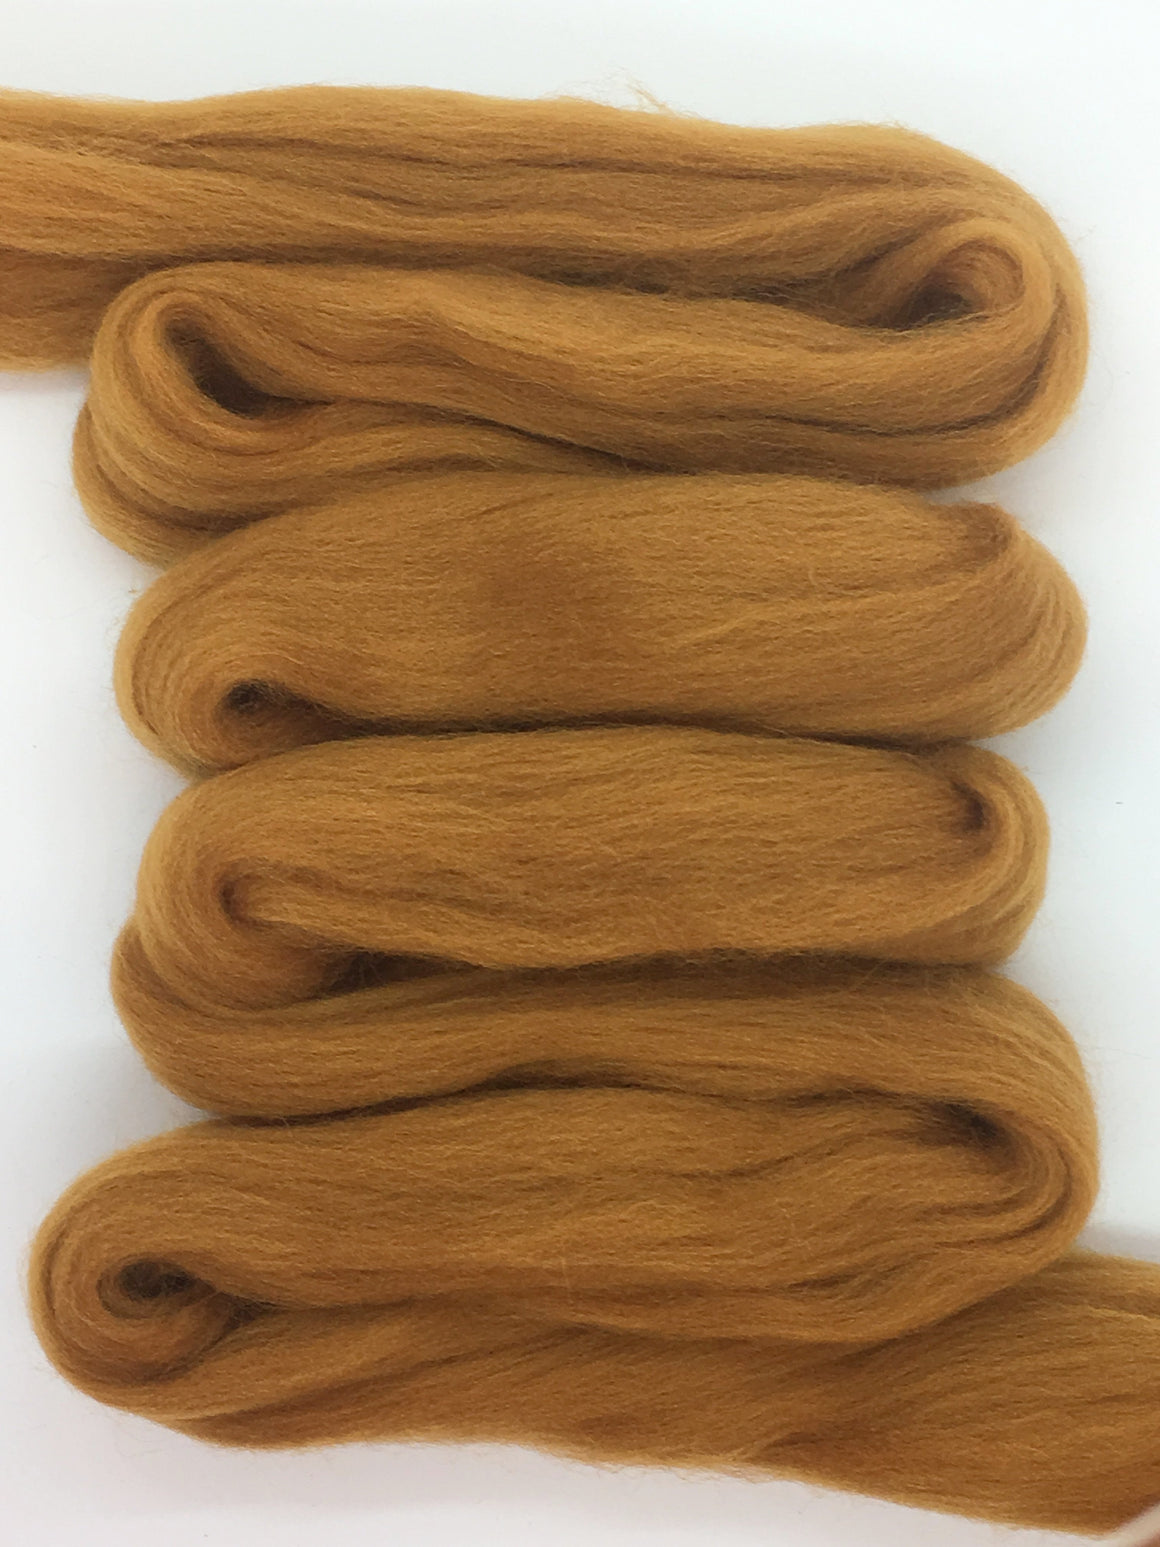 Cinnamon Spice Merino Wool Top Roving